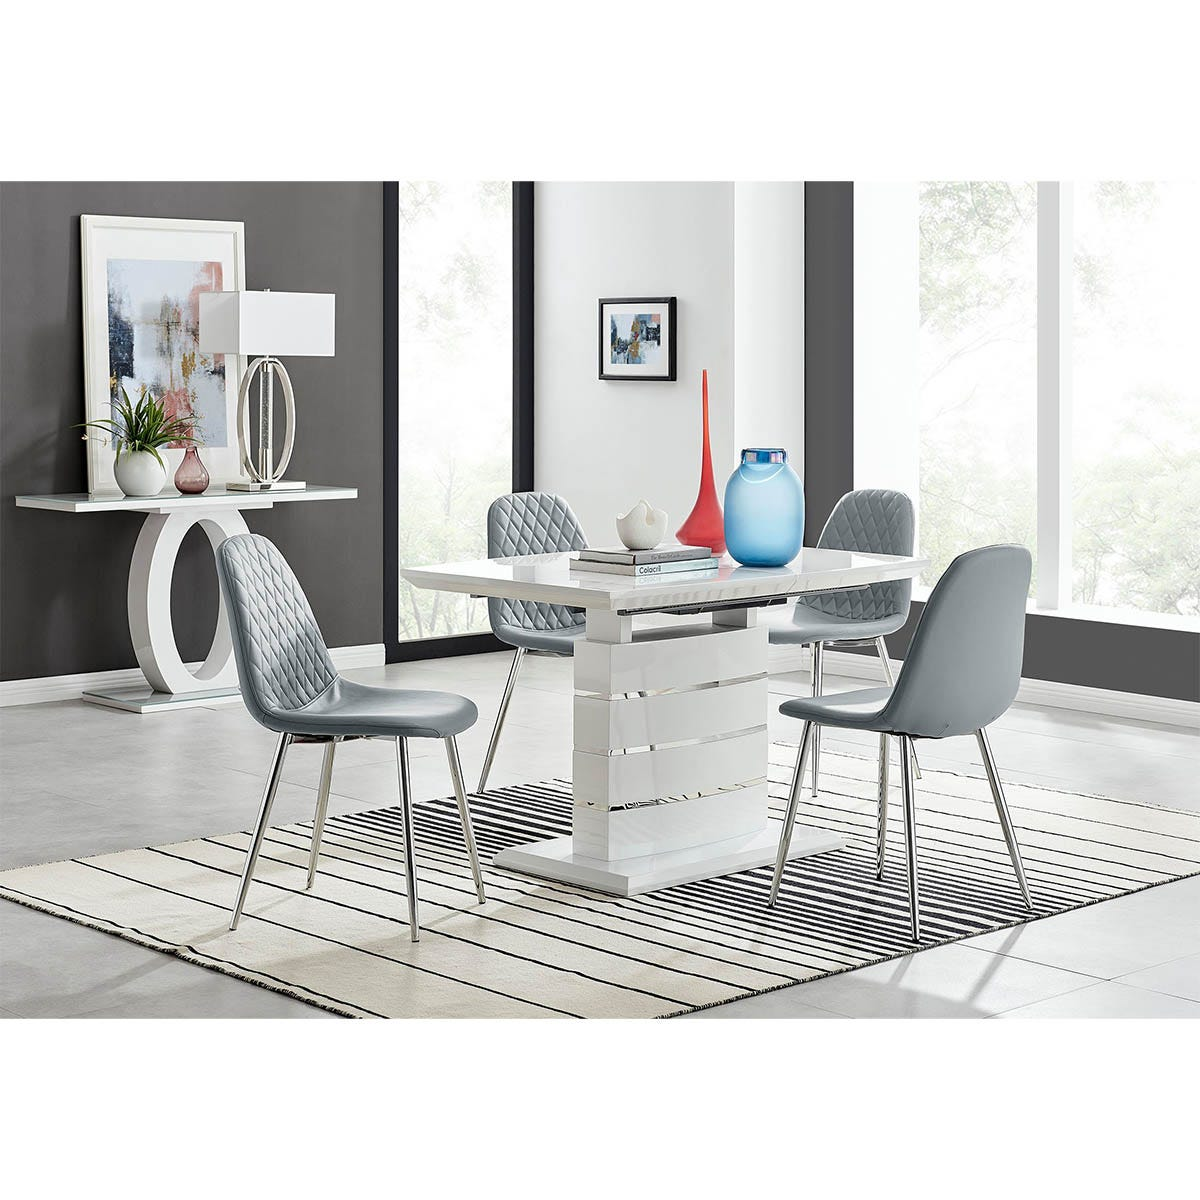 Furniture Box Renato 120cm High Gloss Extending Dining Table and 4 Grey Corona Silver Leg Chairs